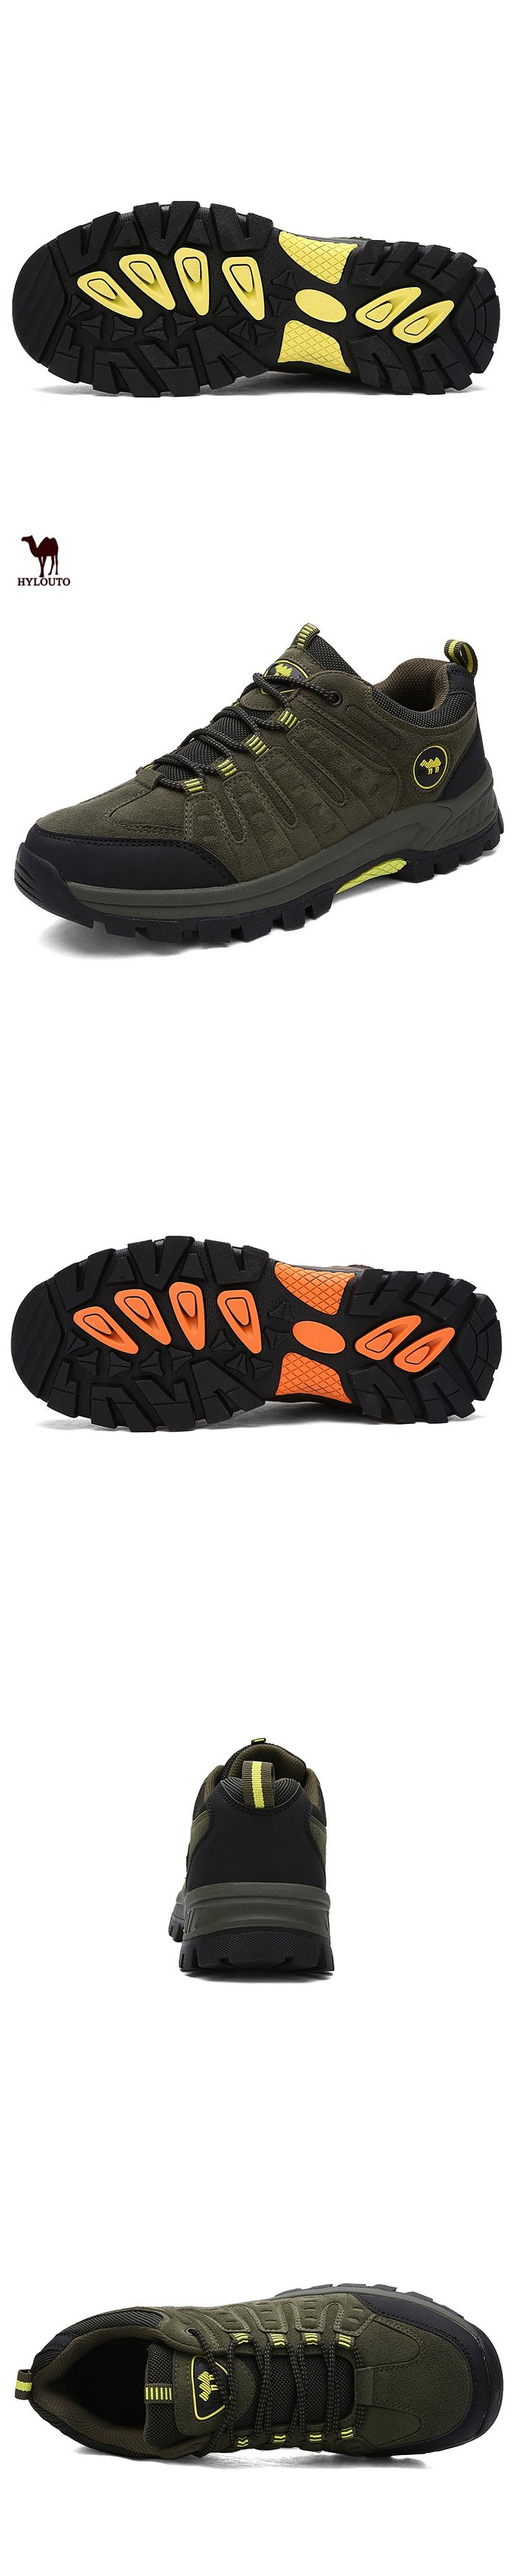 2017 HYLOUTO Men's Outdoor Sports Shoes Breathable Wear-resistant Mountaineering Sports Shoes